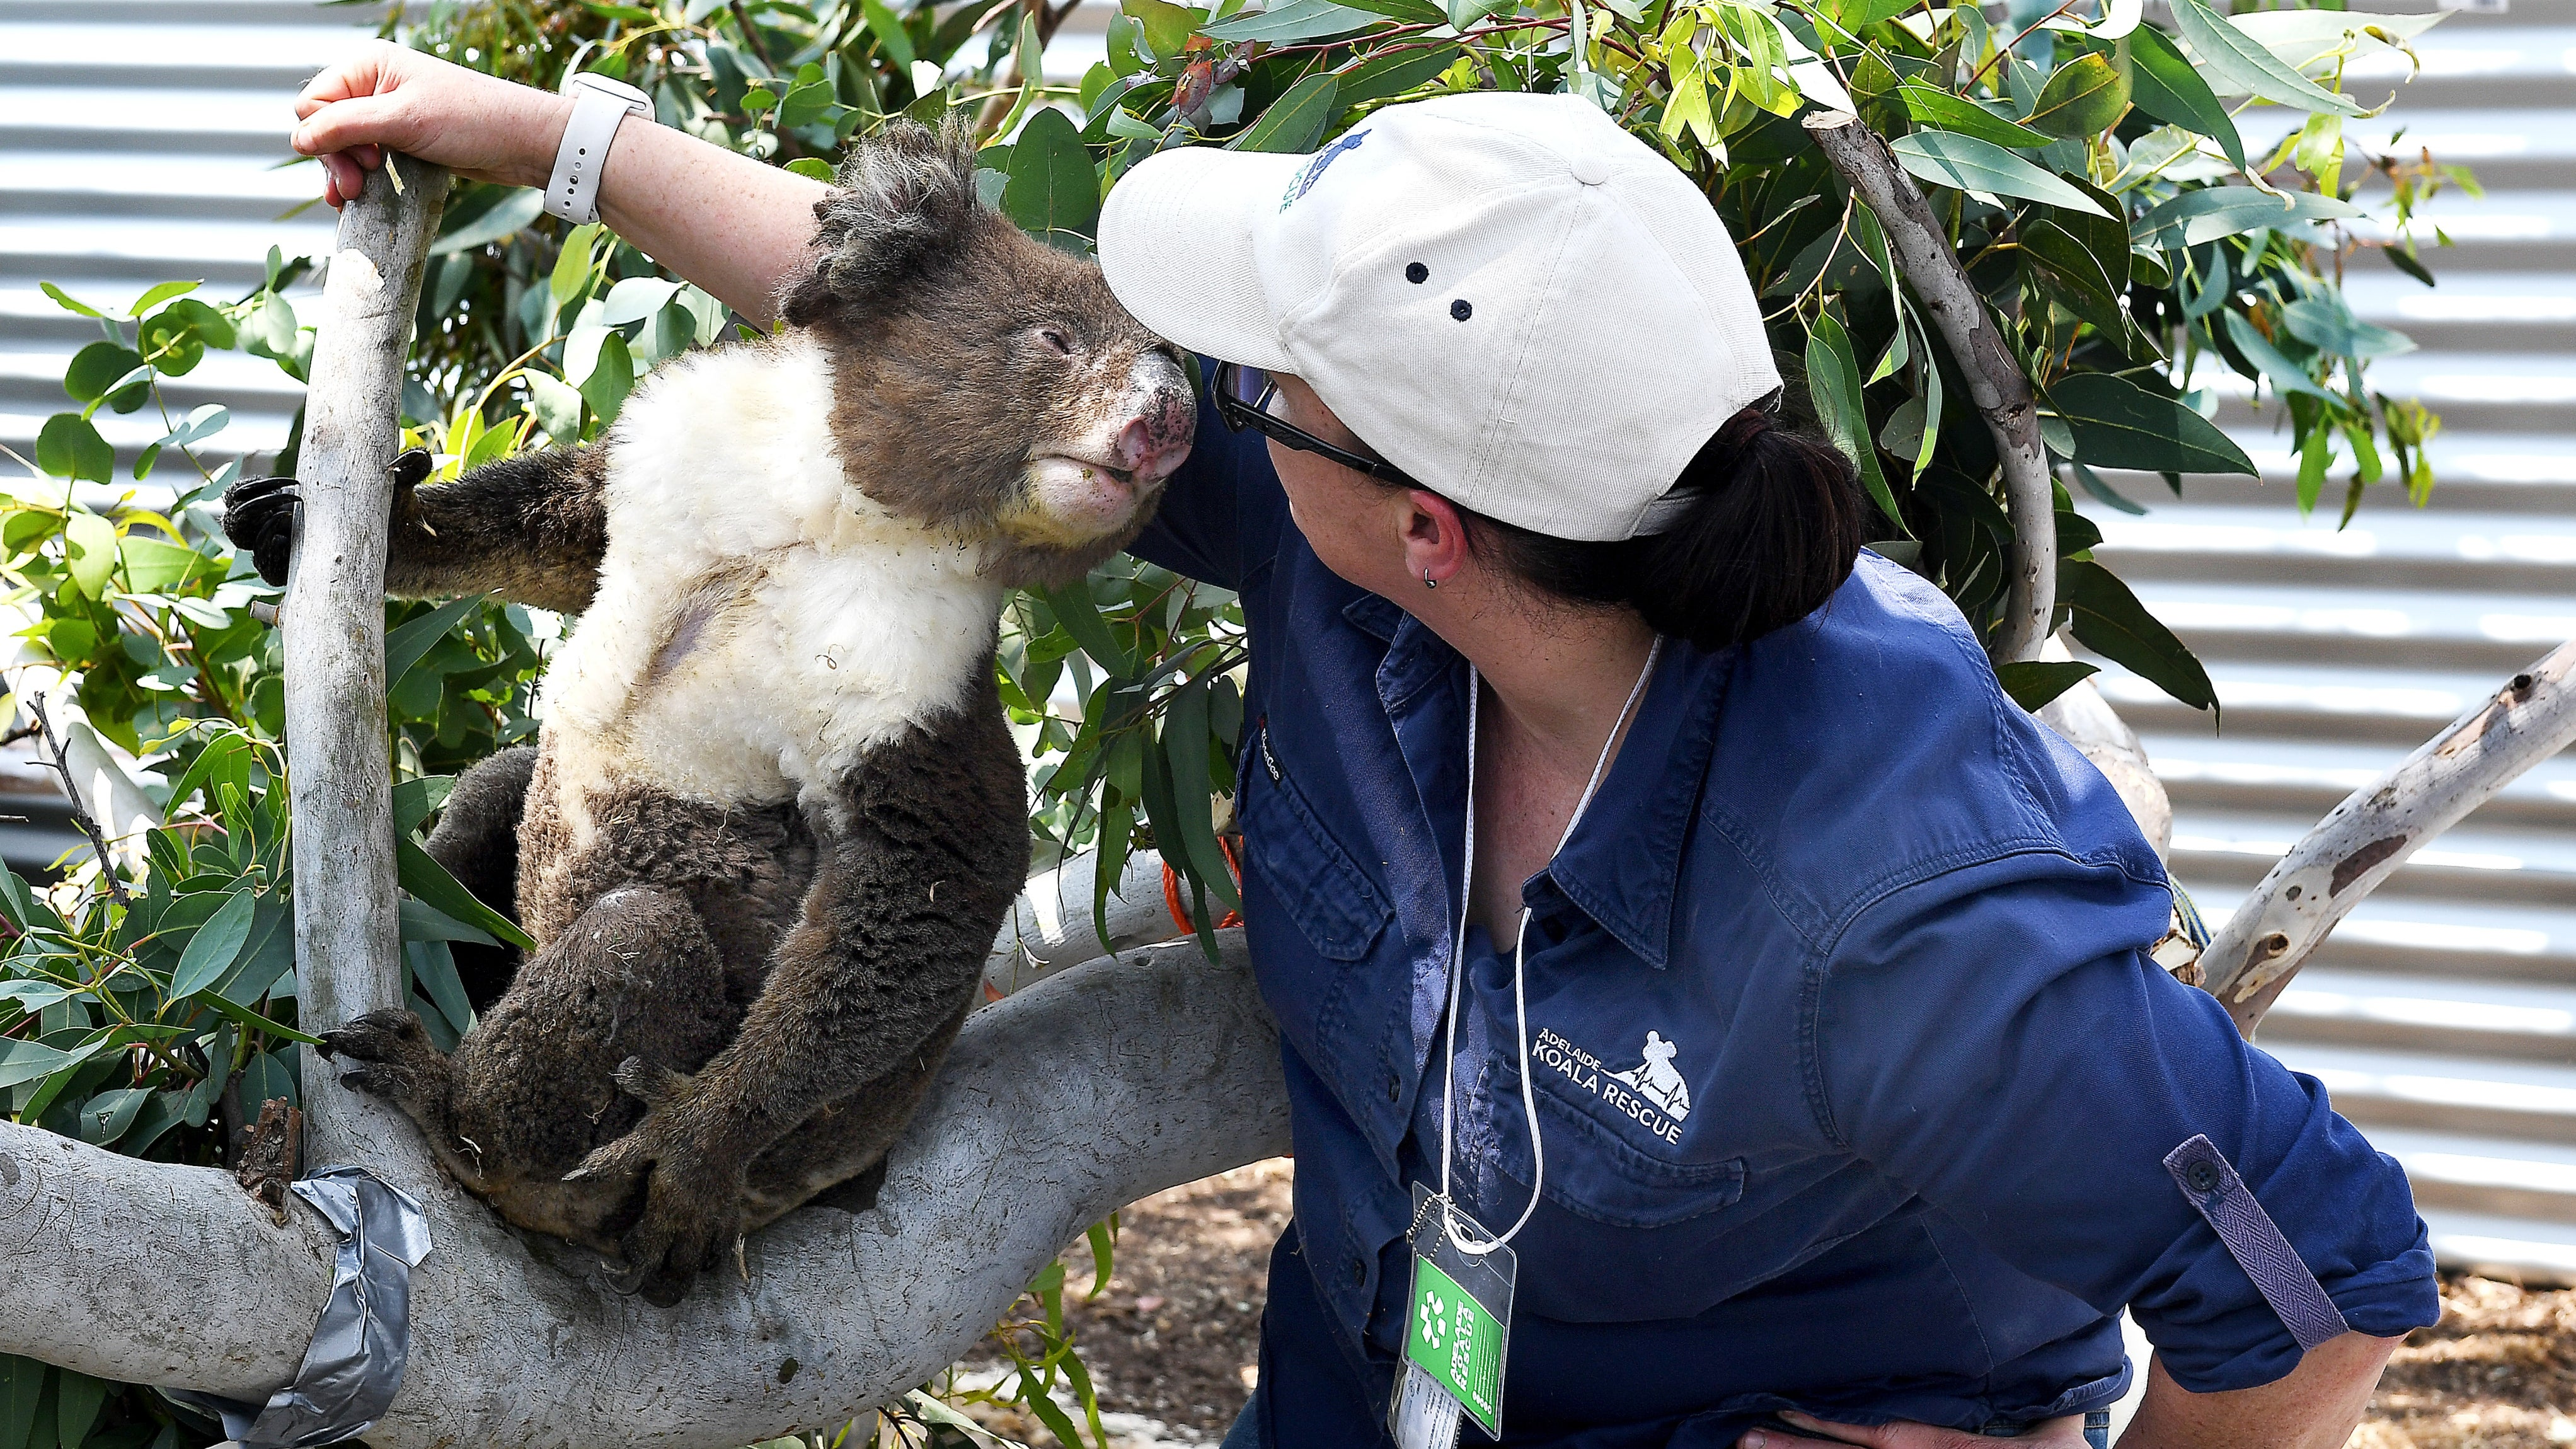 Meet the Koalas, Kangaroos and Other Animals Who Need Help in Australia's Wildfires